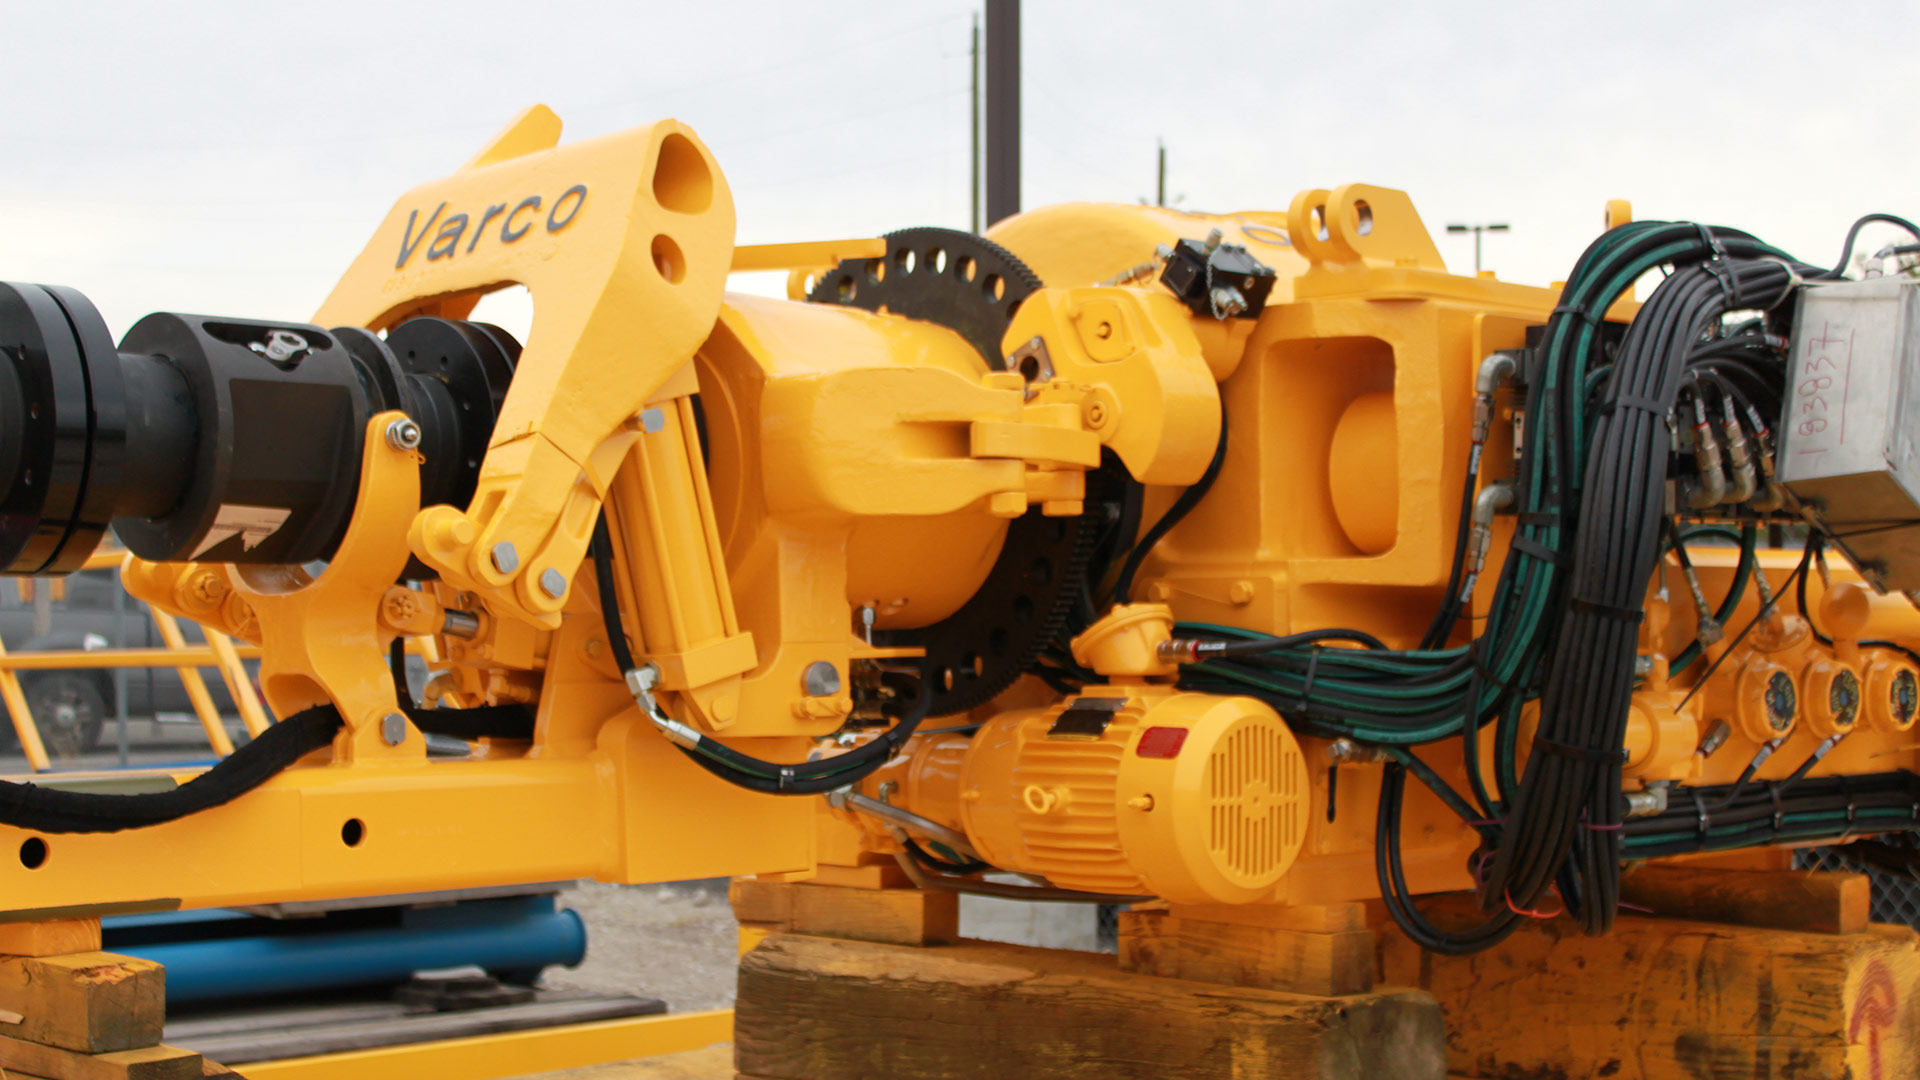 Units manufacture oilfield equipment, drilling exploration and spare parts